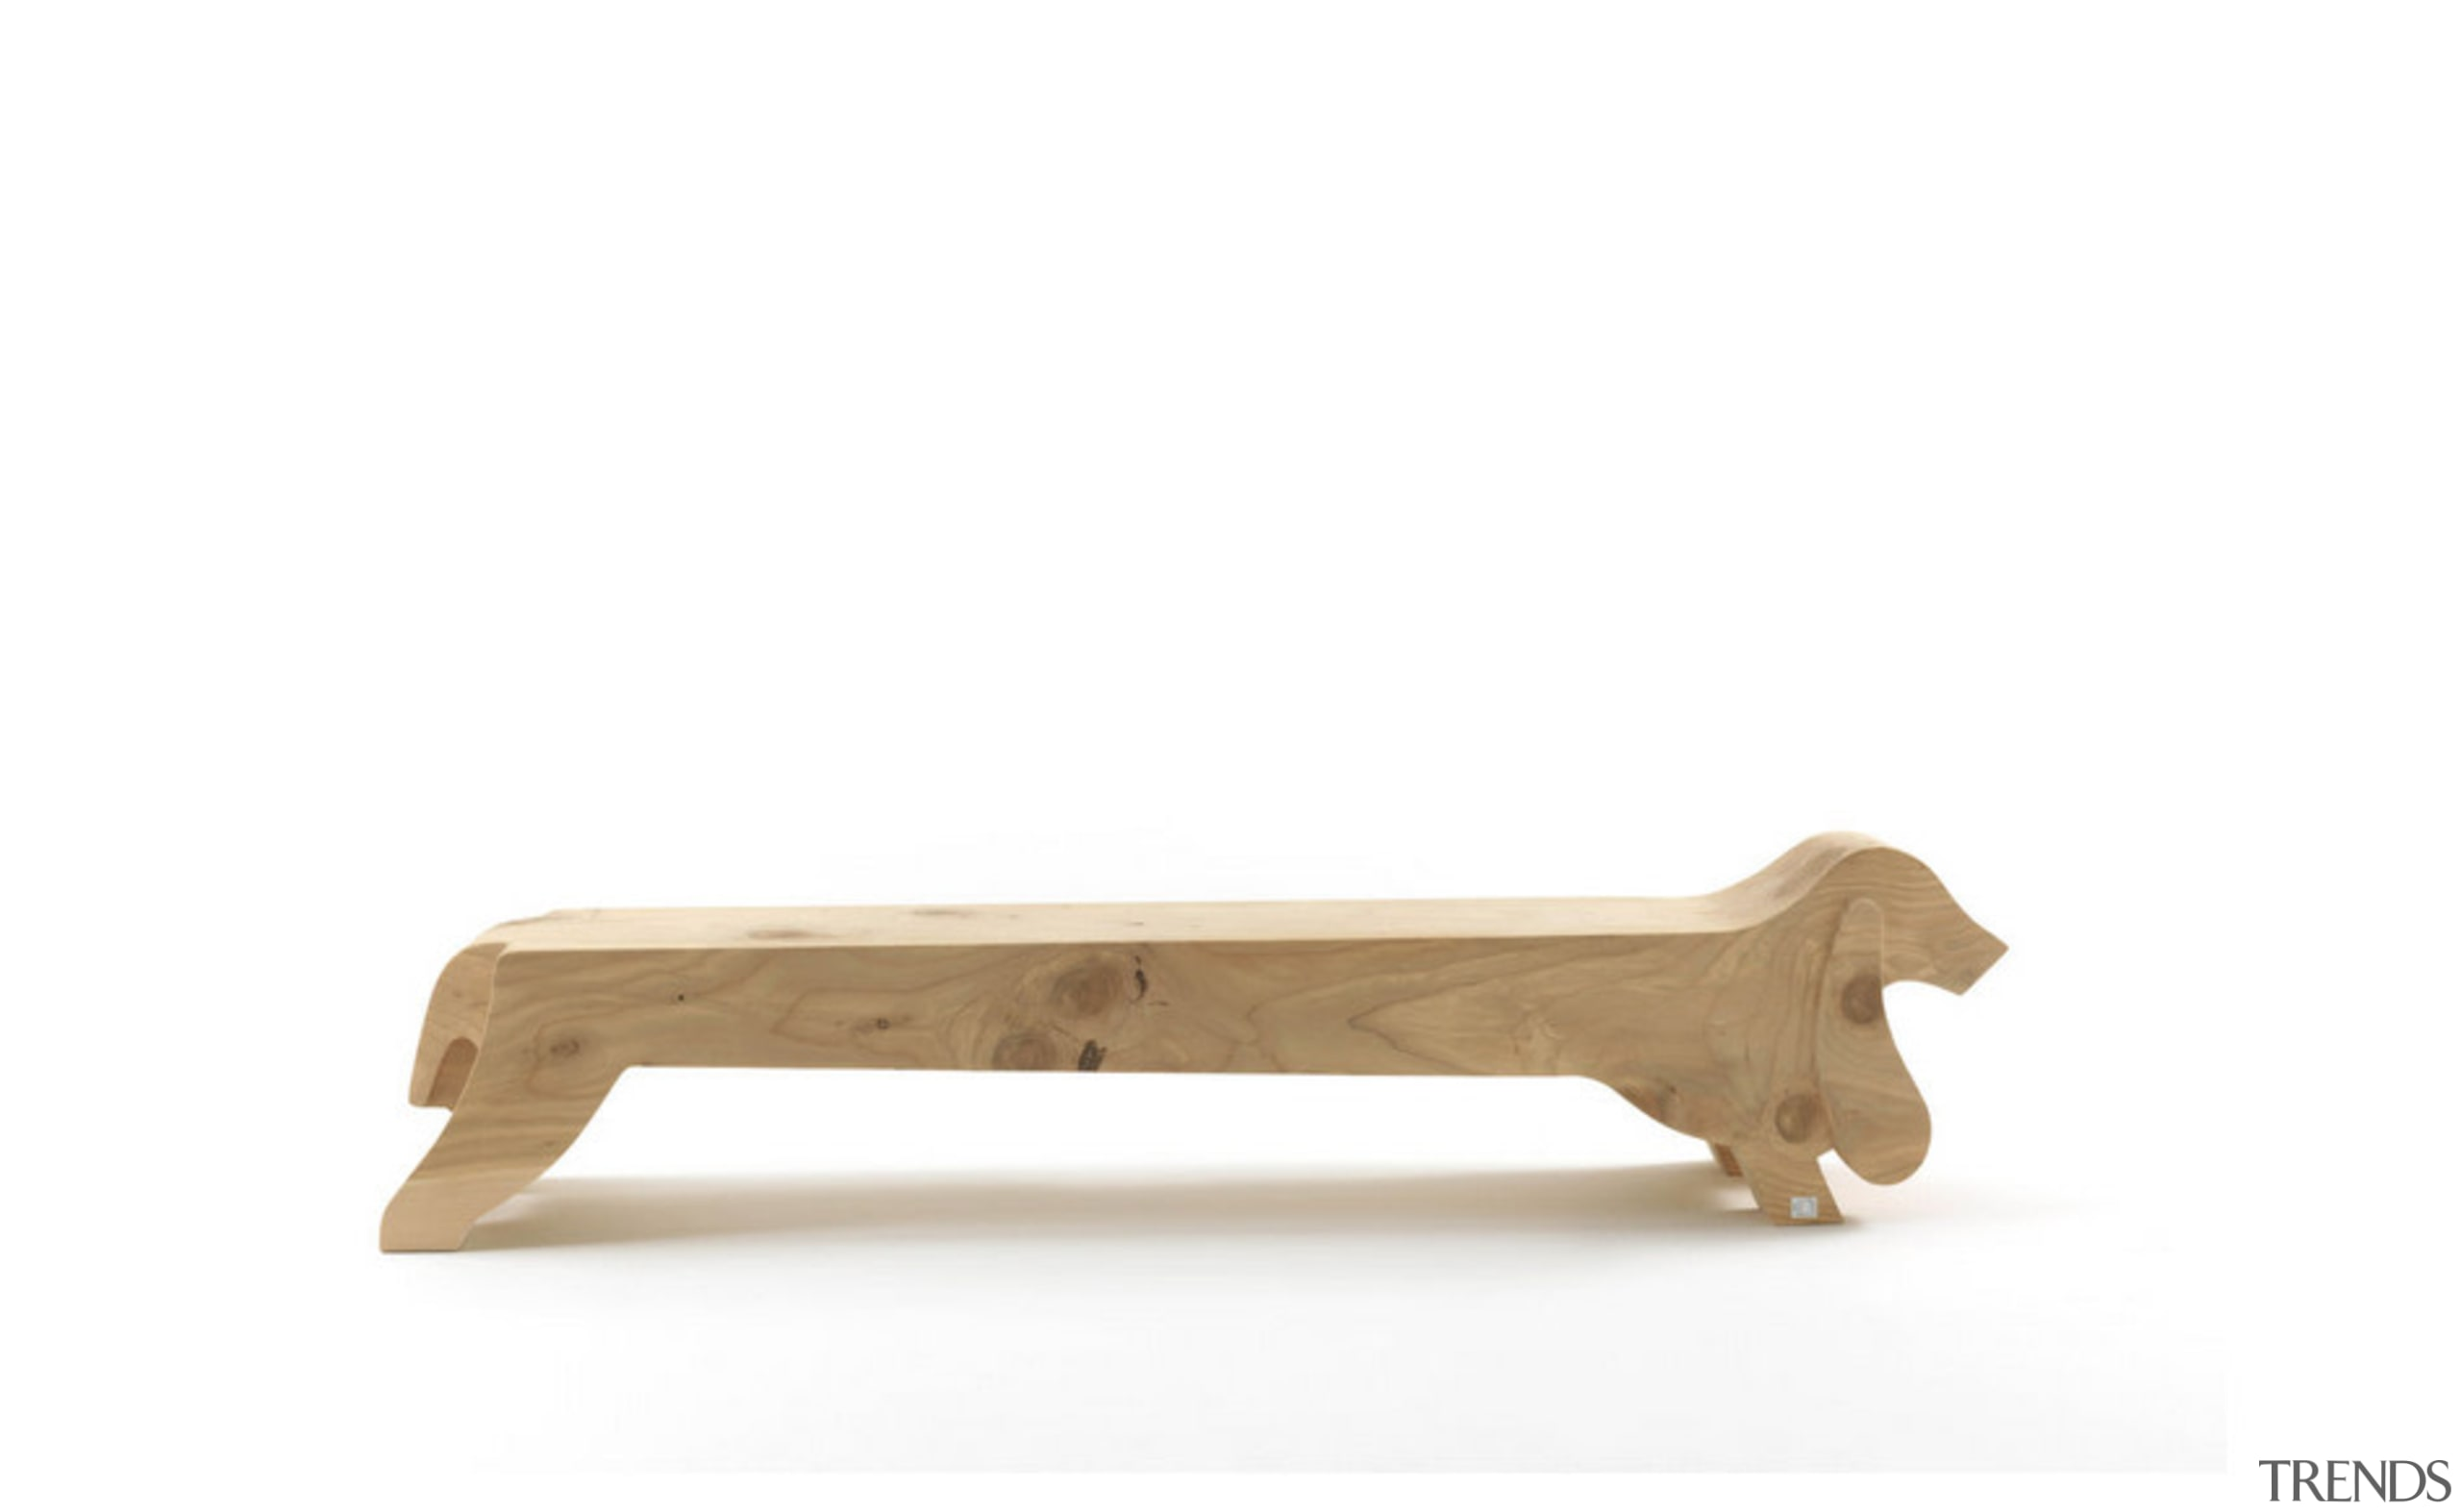 If this bench looks a little bit canine dog like mammal, furniture, outdoor furniture, table, wood, white